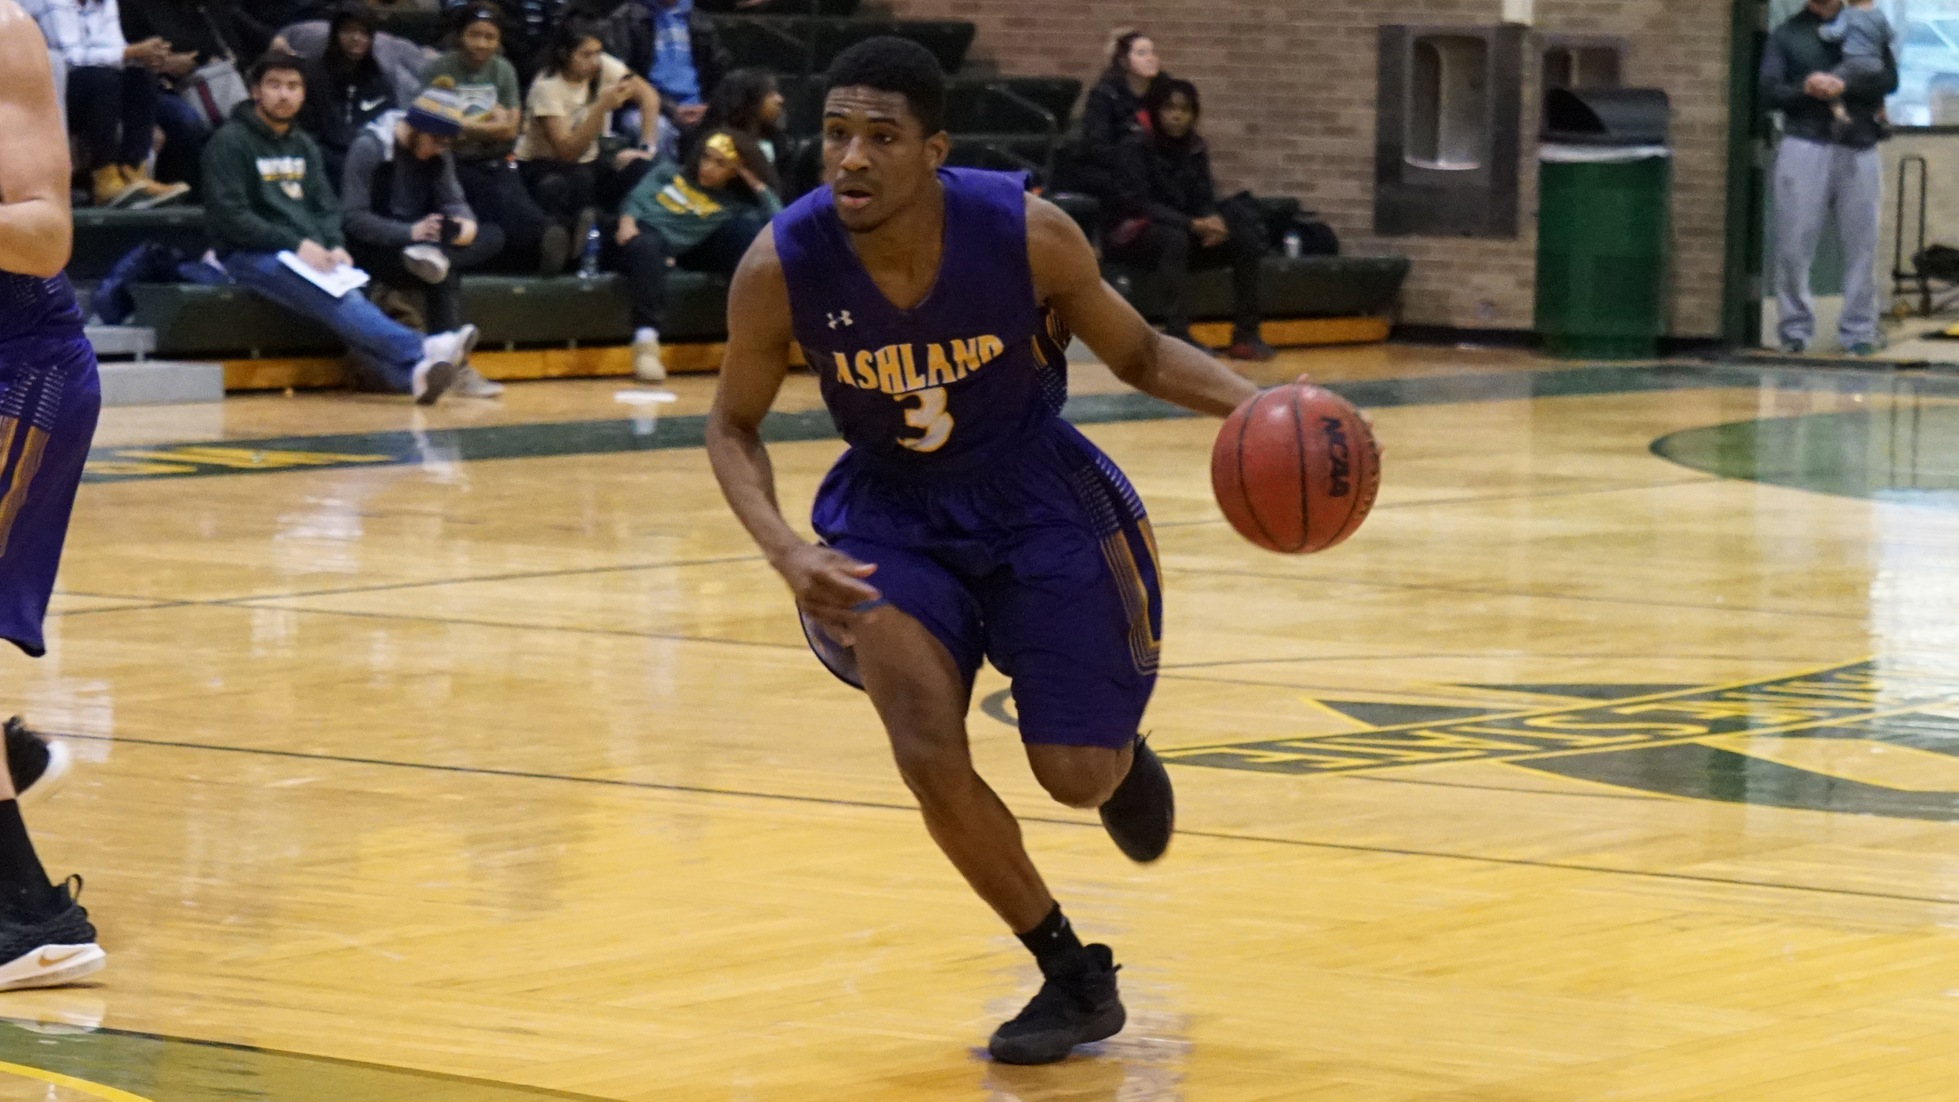 Haraway's Jumper With 1.3 Seconds Left Lifts No. 7 Ashland